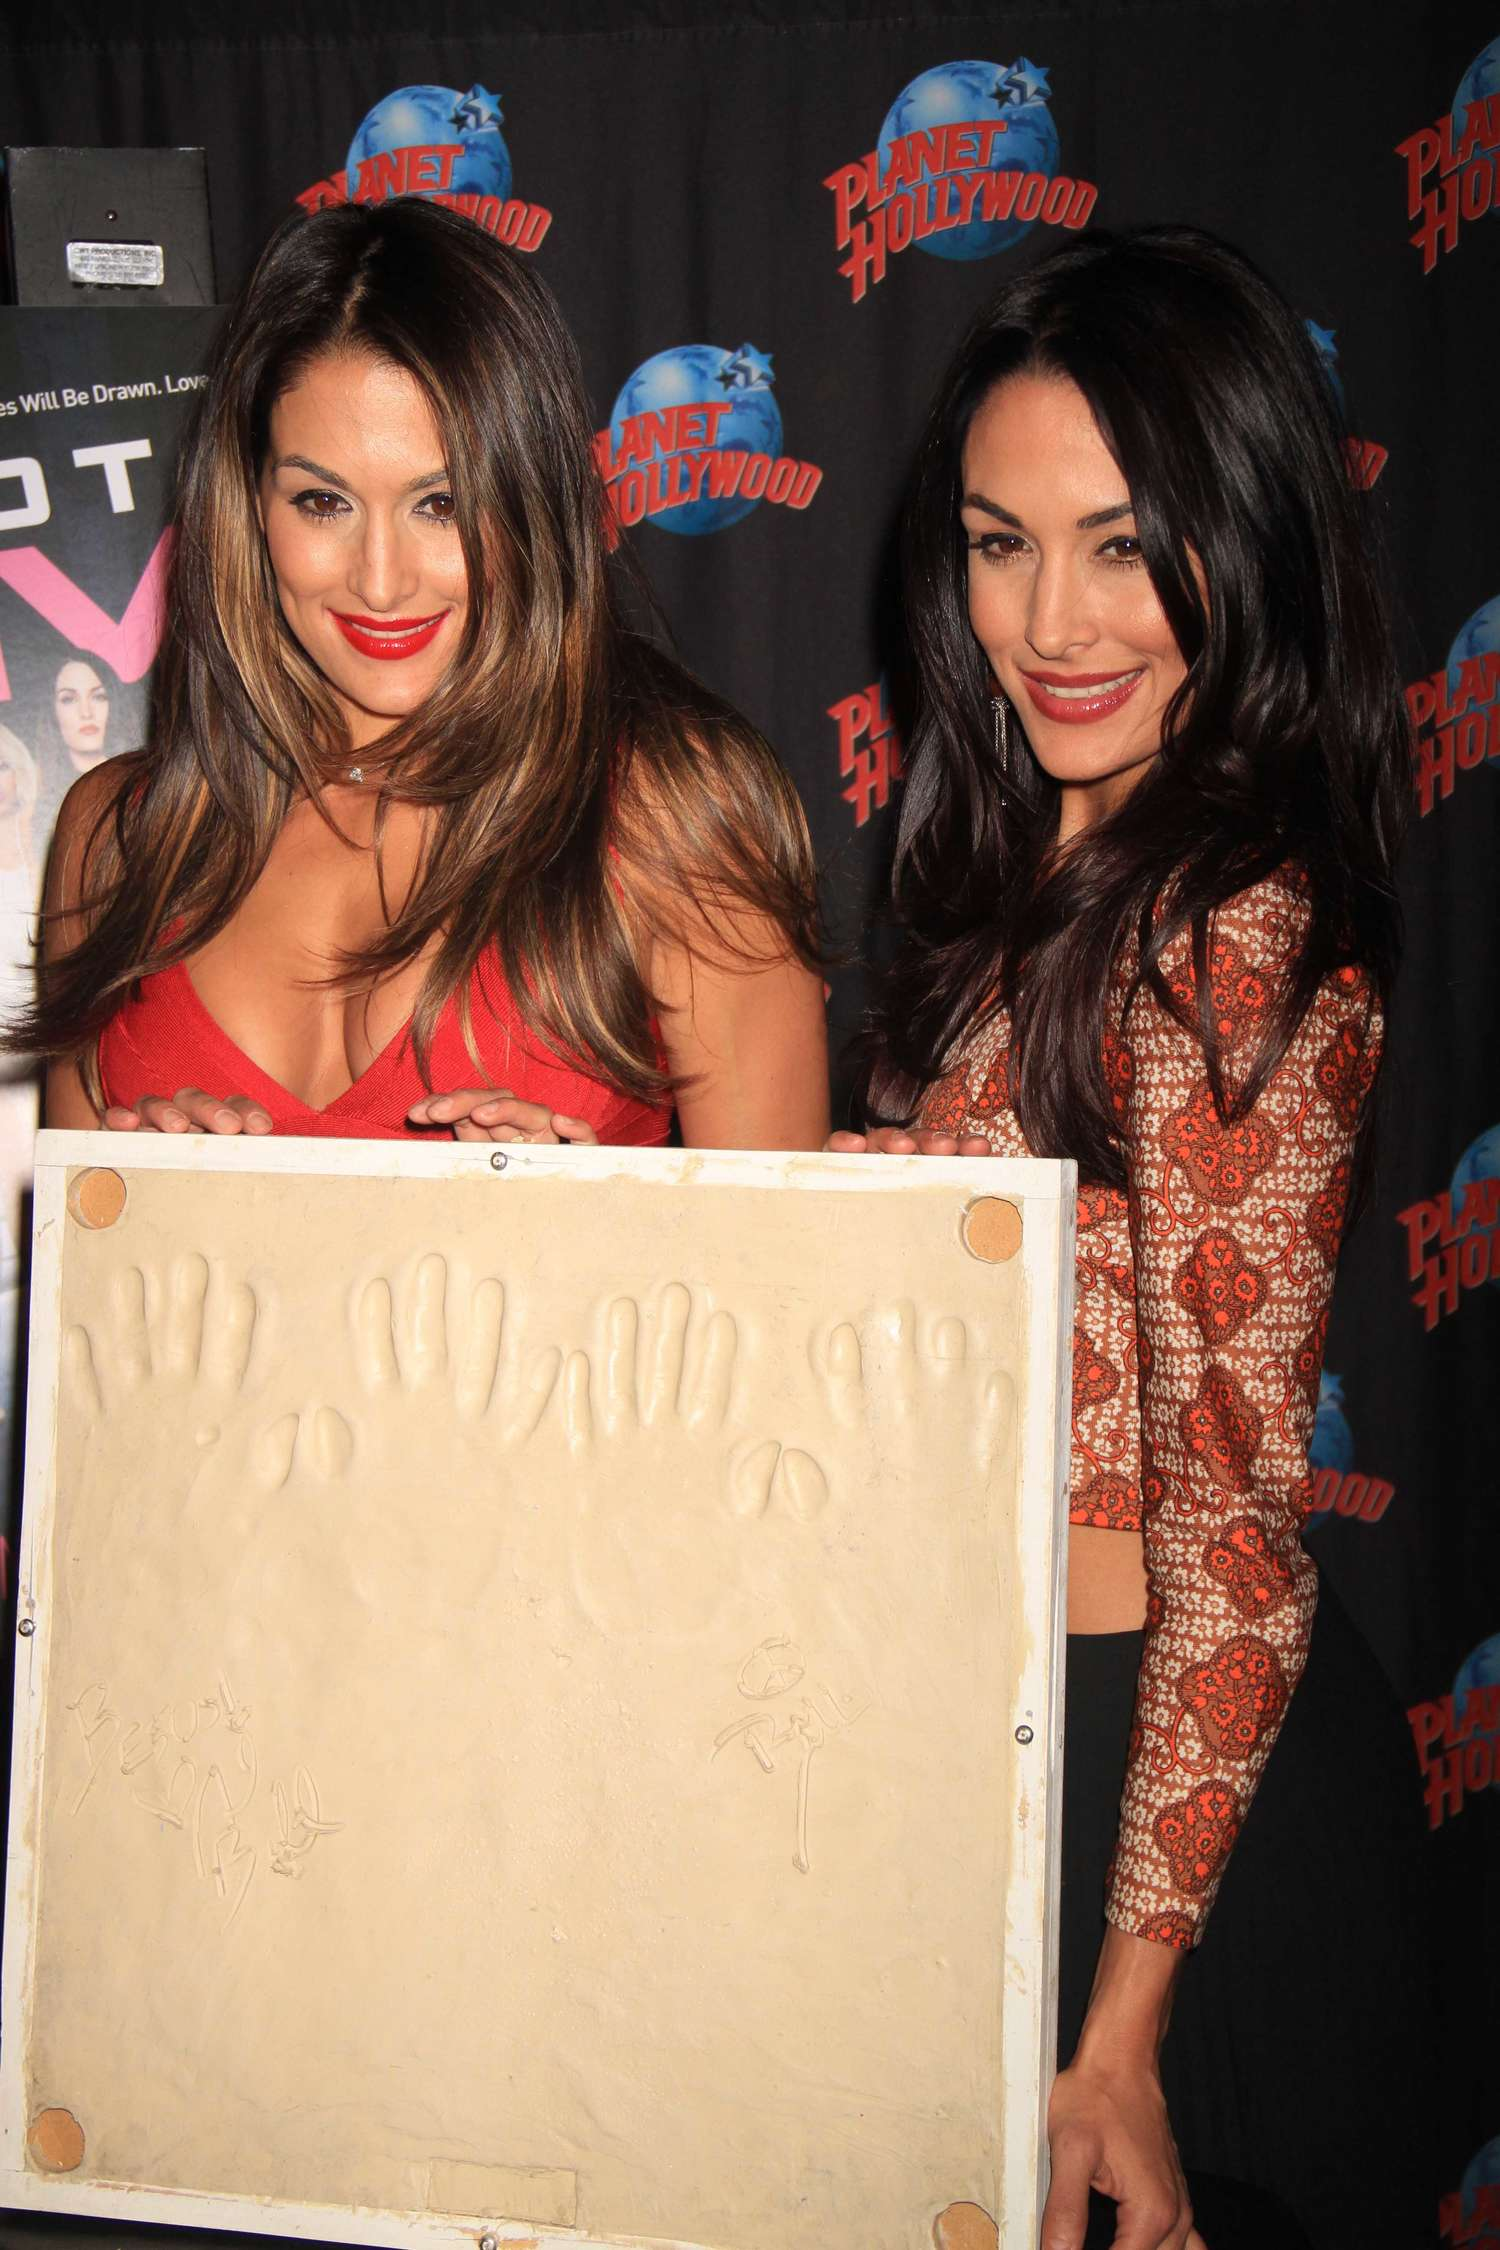 Nikki Brie Bella Planet Hollywood Hall of Fame in New York